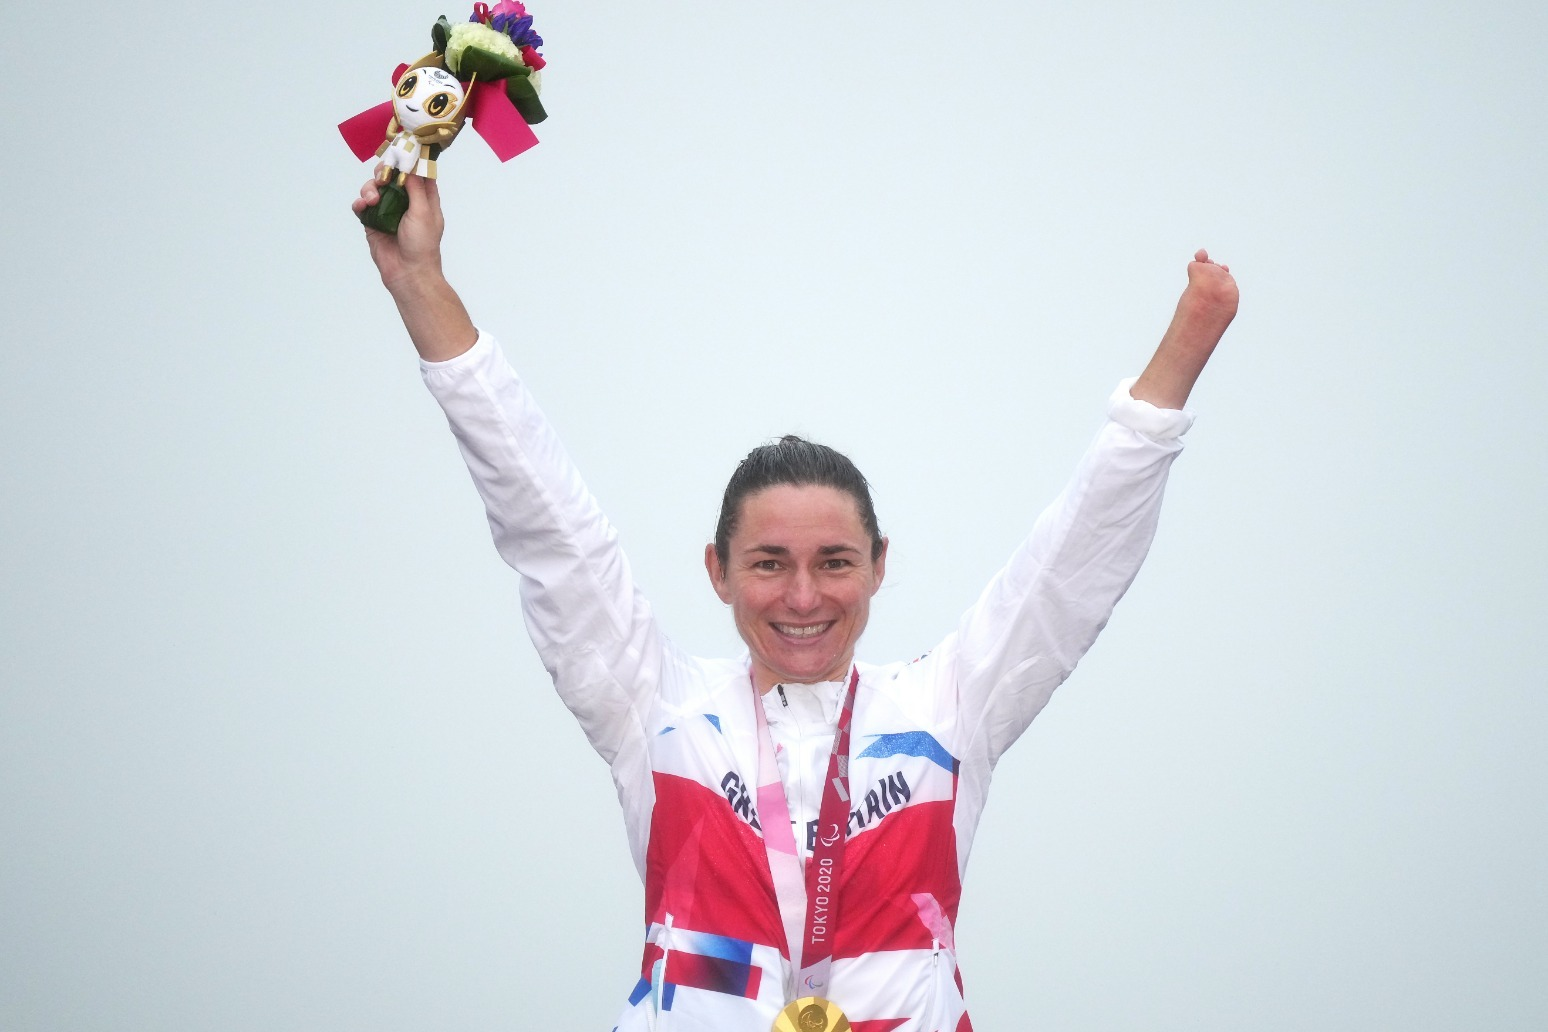 Dame Sarah Storey wins 17th gold to become Britain's most successful Paralympian